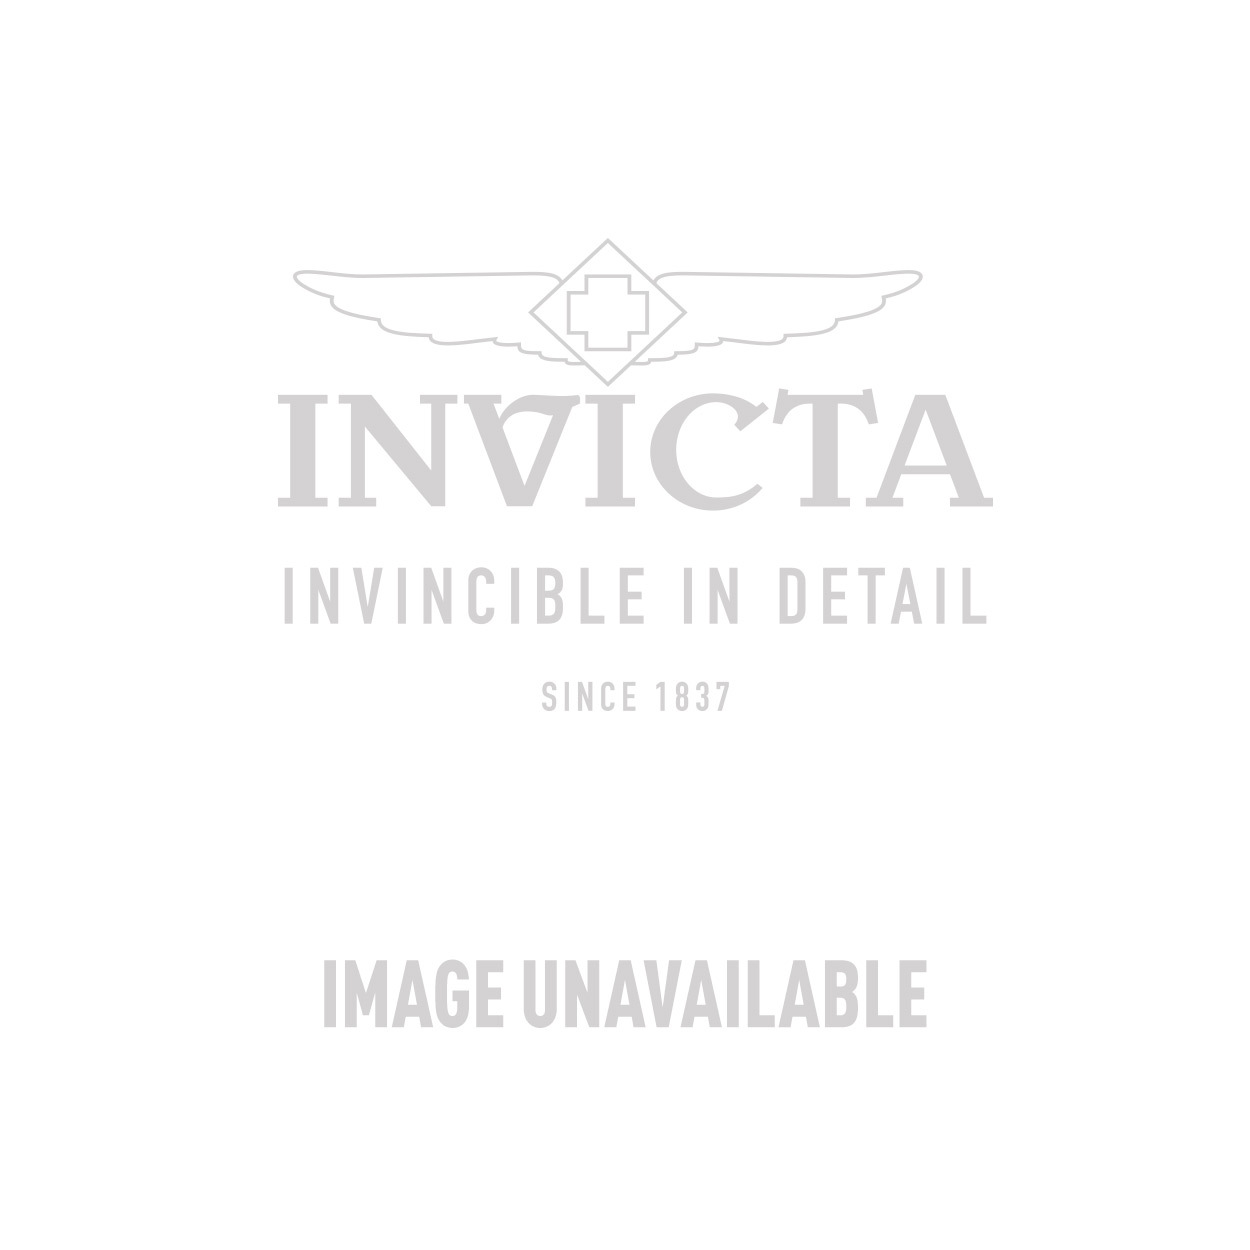 Invicta Specialty Swiss Movement Quartz Watch - Stainless Steel case Stainless Steel band - Model 0365